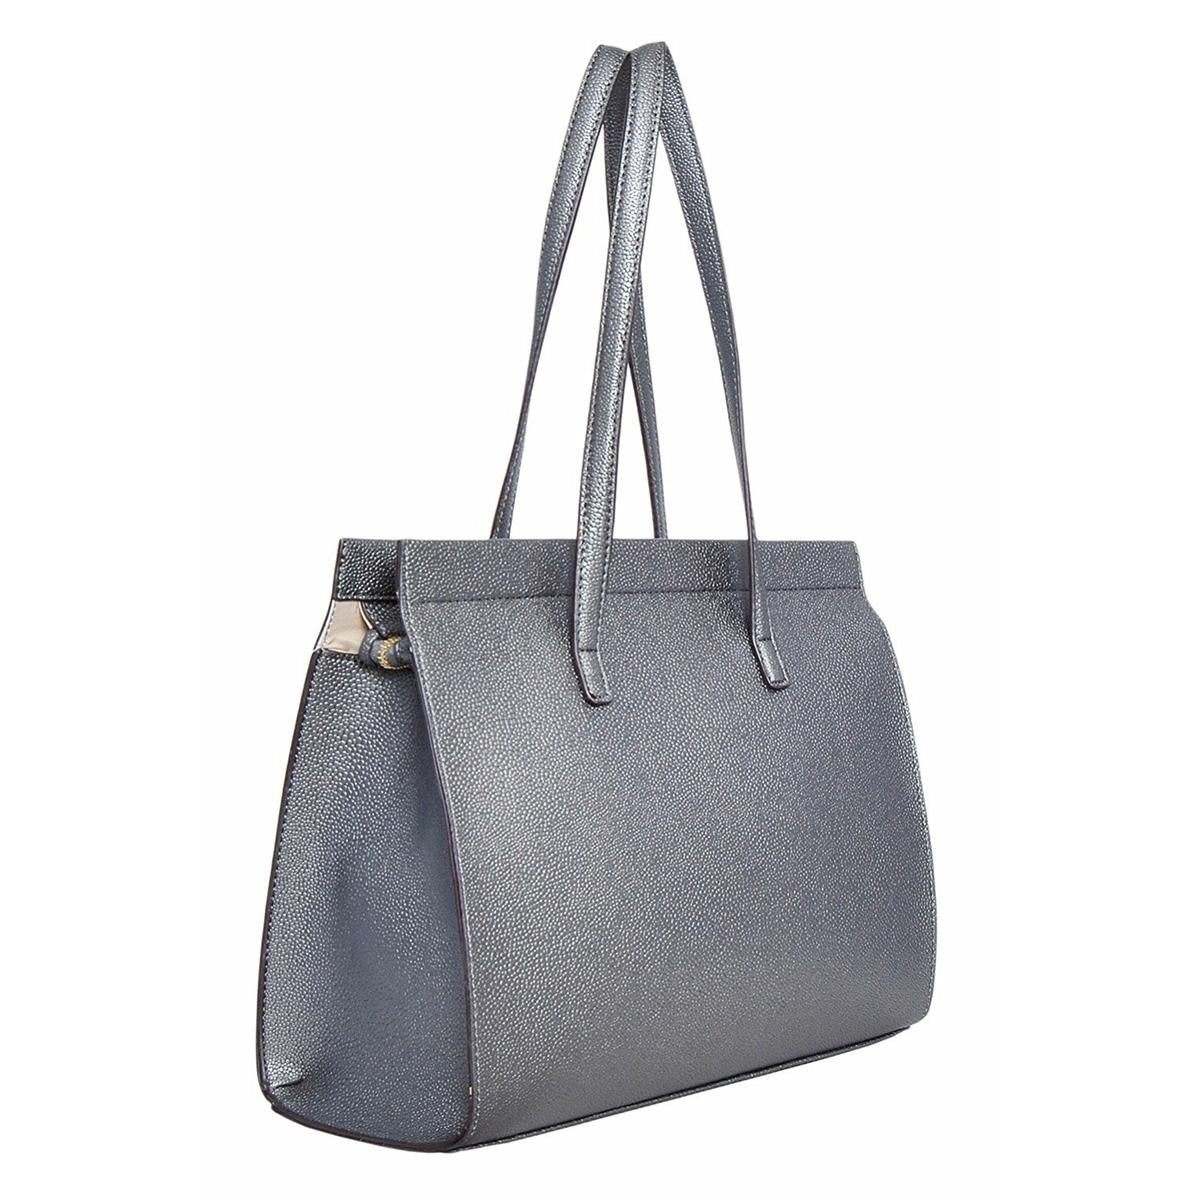 Tahari Womens T Riffic Satchel Handbag Faux Leather Pebbled Large Free Shipping On Orders Over 45 17167625